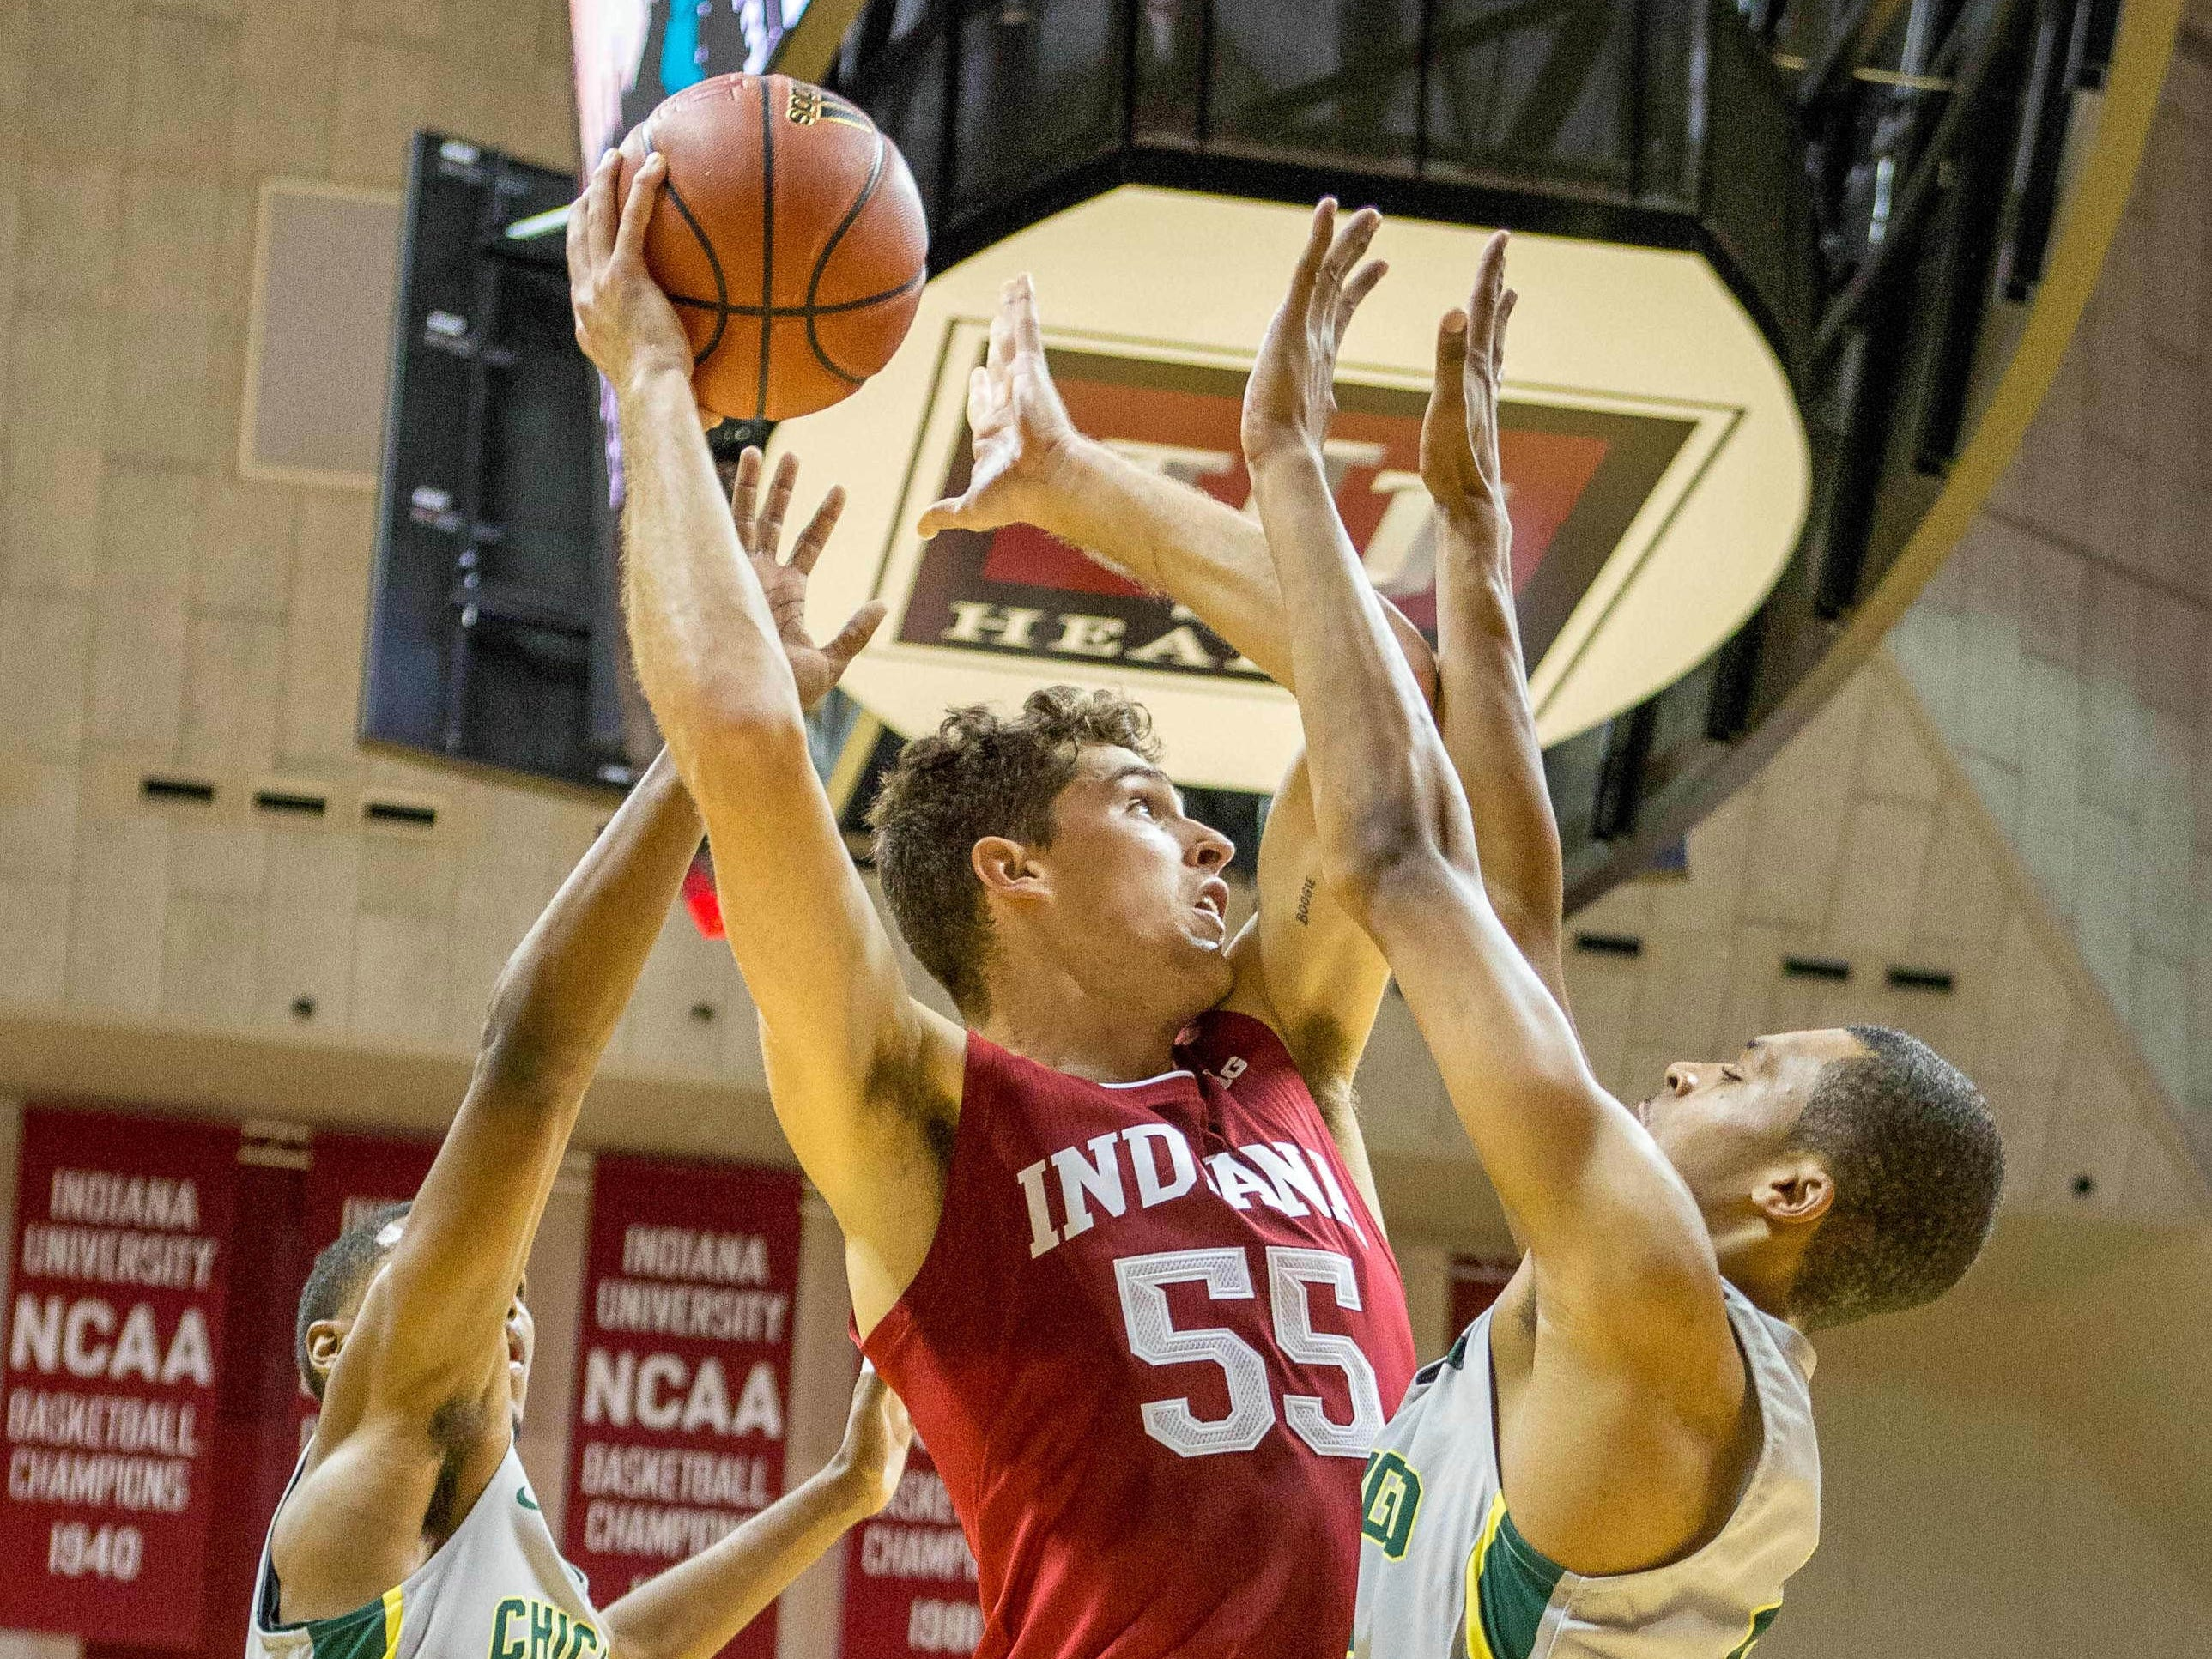 Hoosiers forward Evan Fitzner scored 14 points in his IU debut against Chicago State.